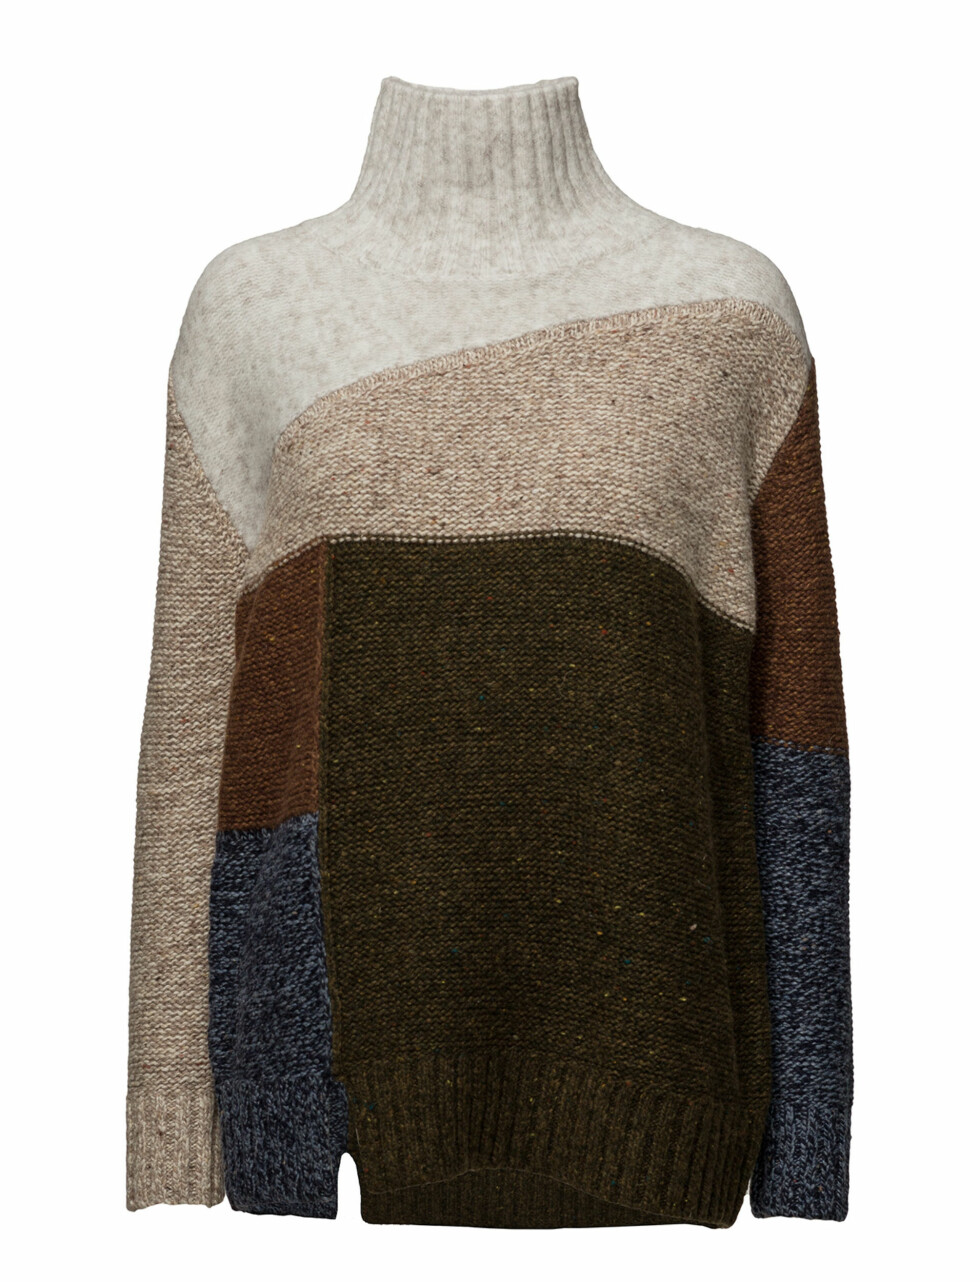 Genser fra French Connection via Boozt.com |861,-| https://www.boozt.com/no/no/french-connection/anna-patchwork-knitted-jumper_15886445/15886448?navId=69882&group=listing&position=1000000